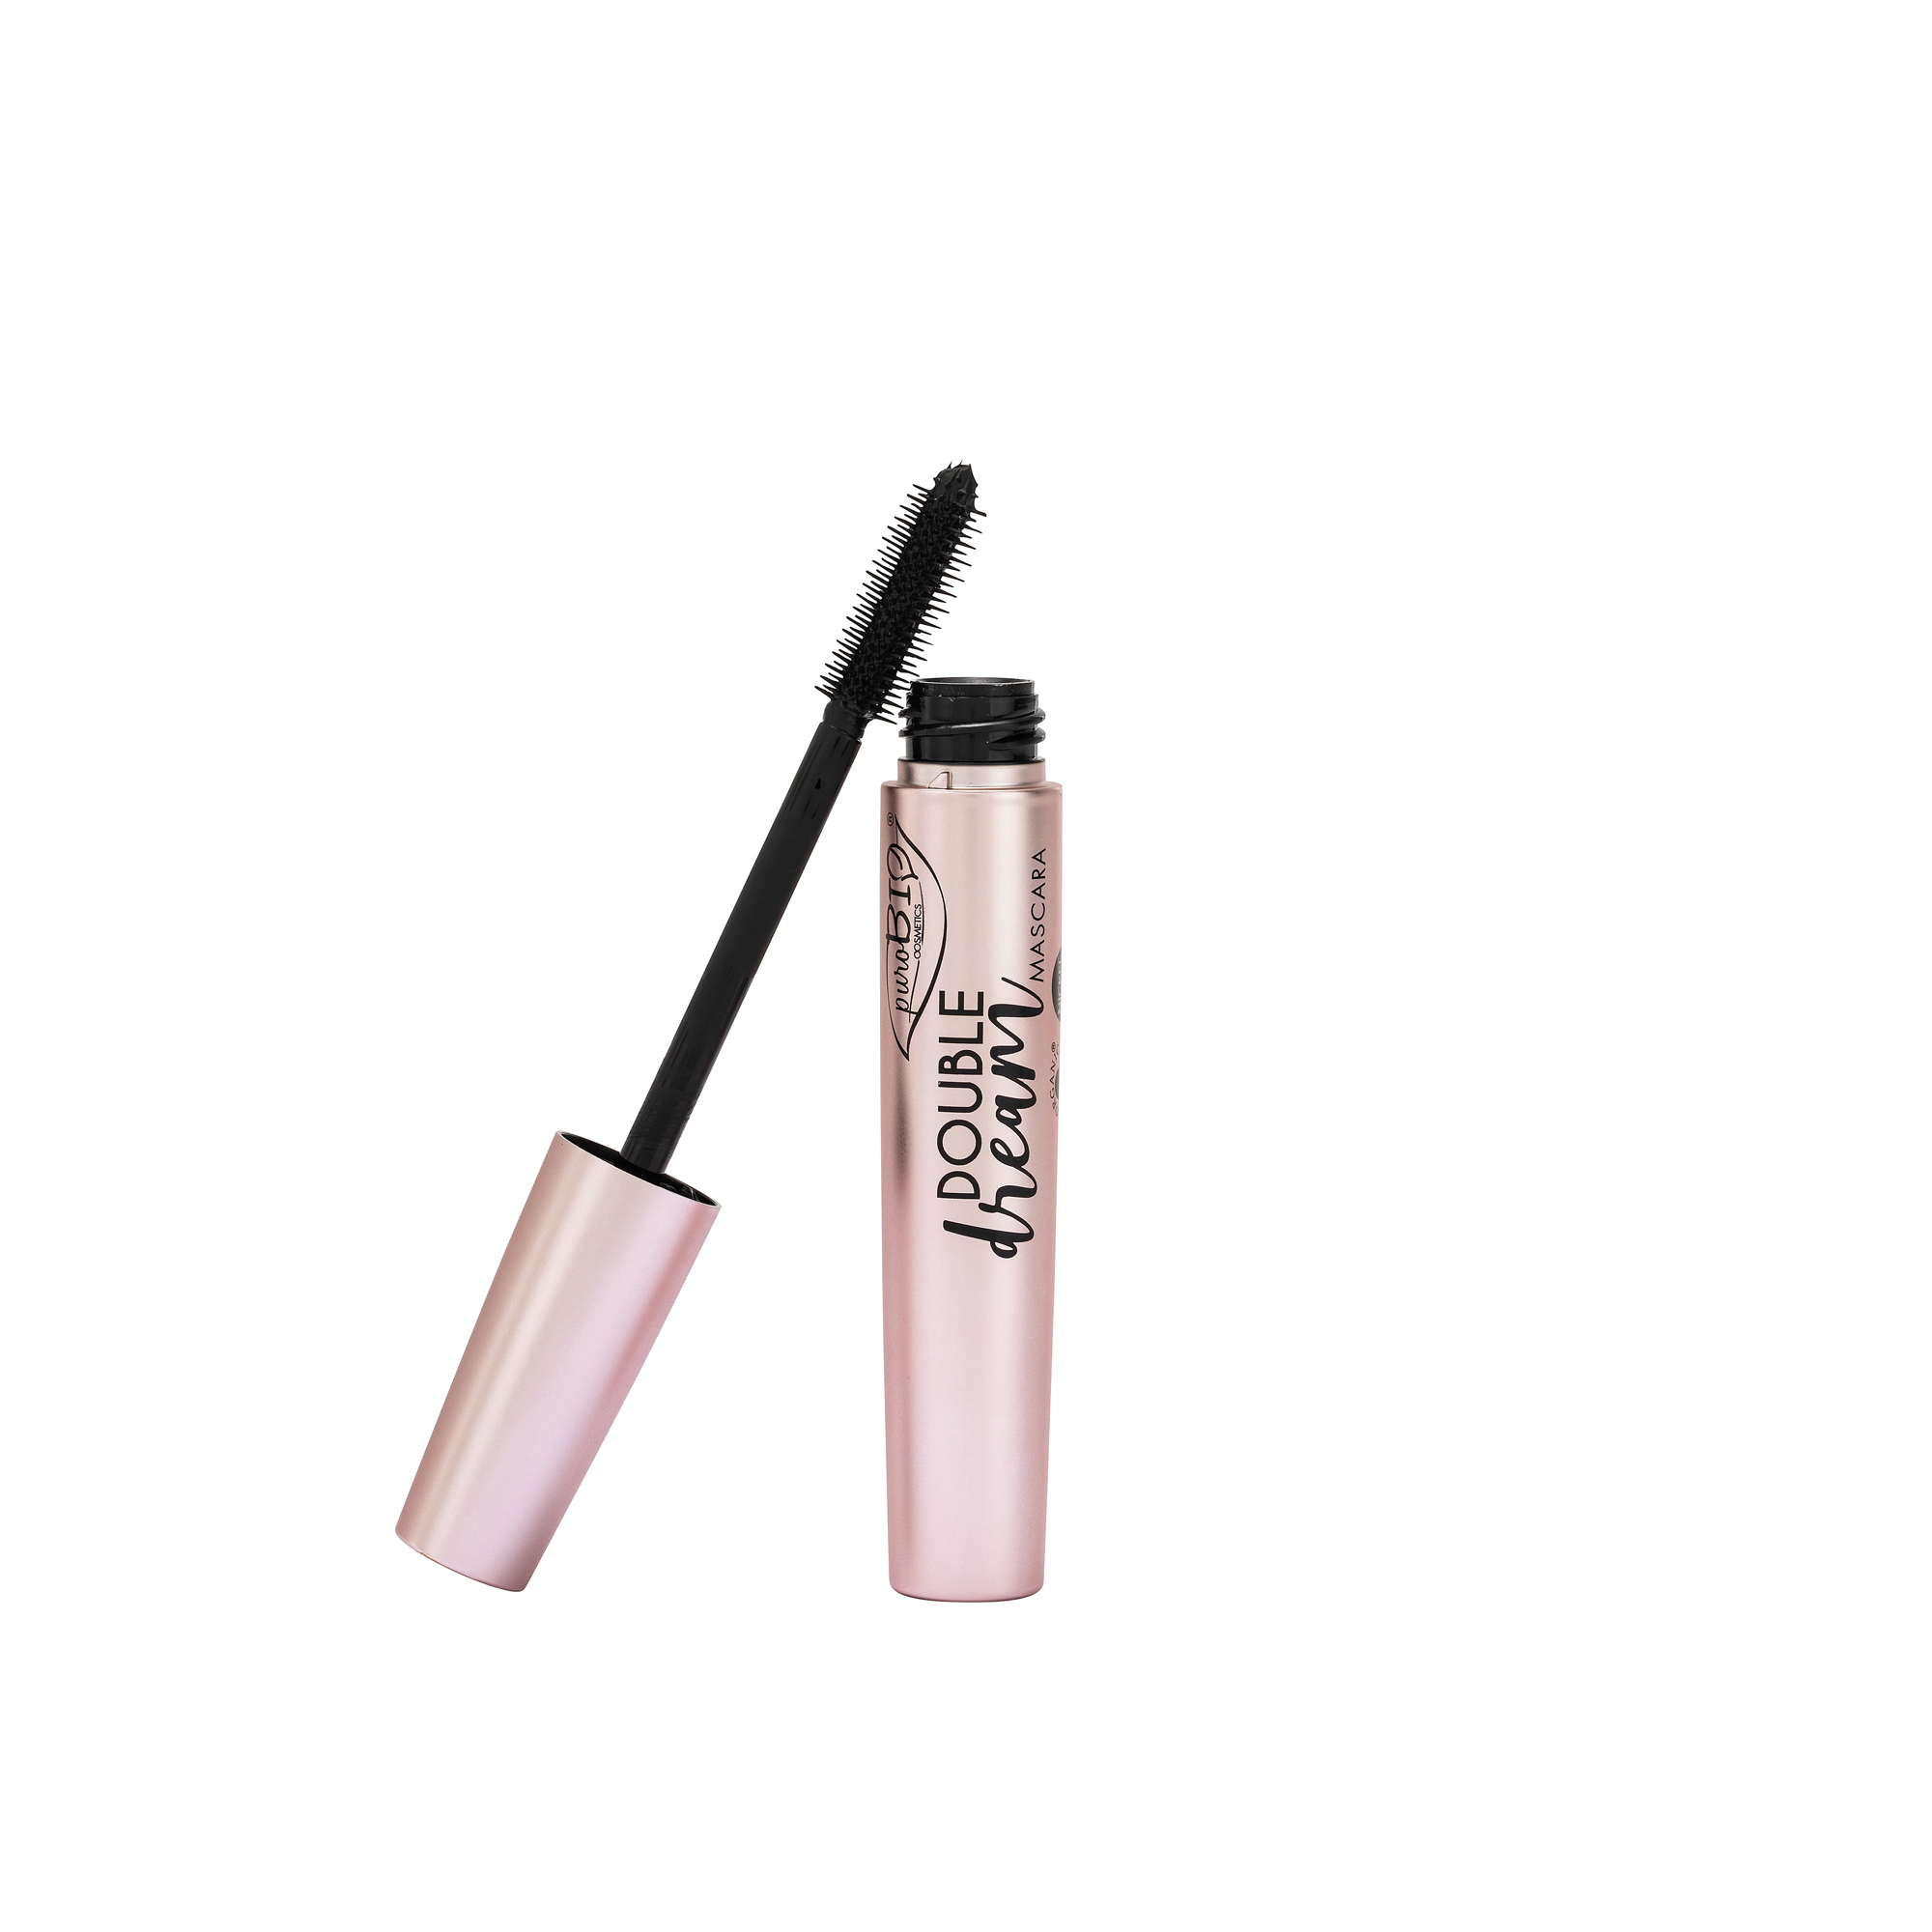 Mascara-Double-Drema-Purobio-cosmetics-black